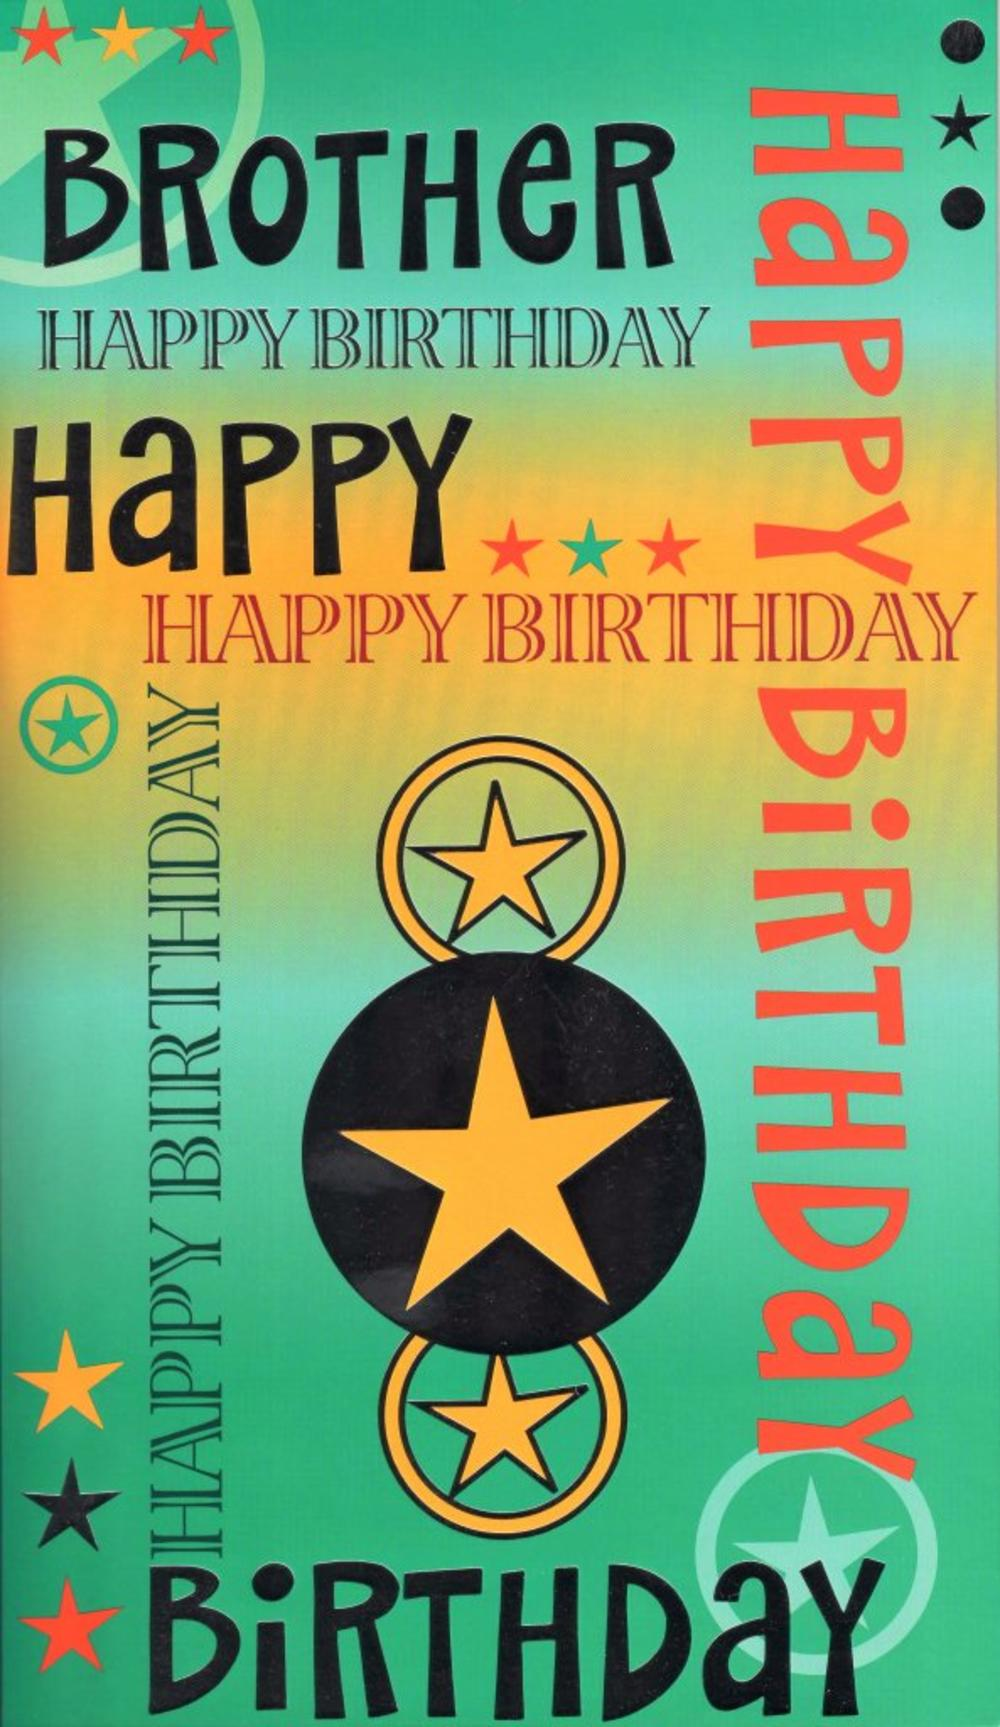 Large Happy Birthday Brother Card